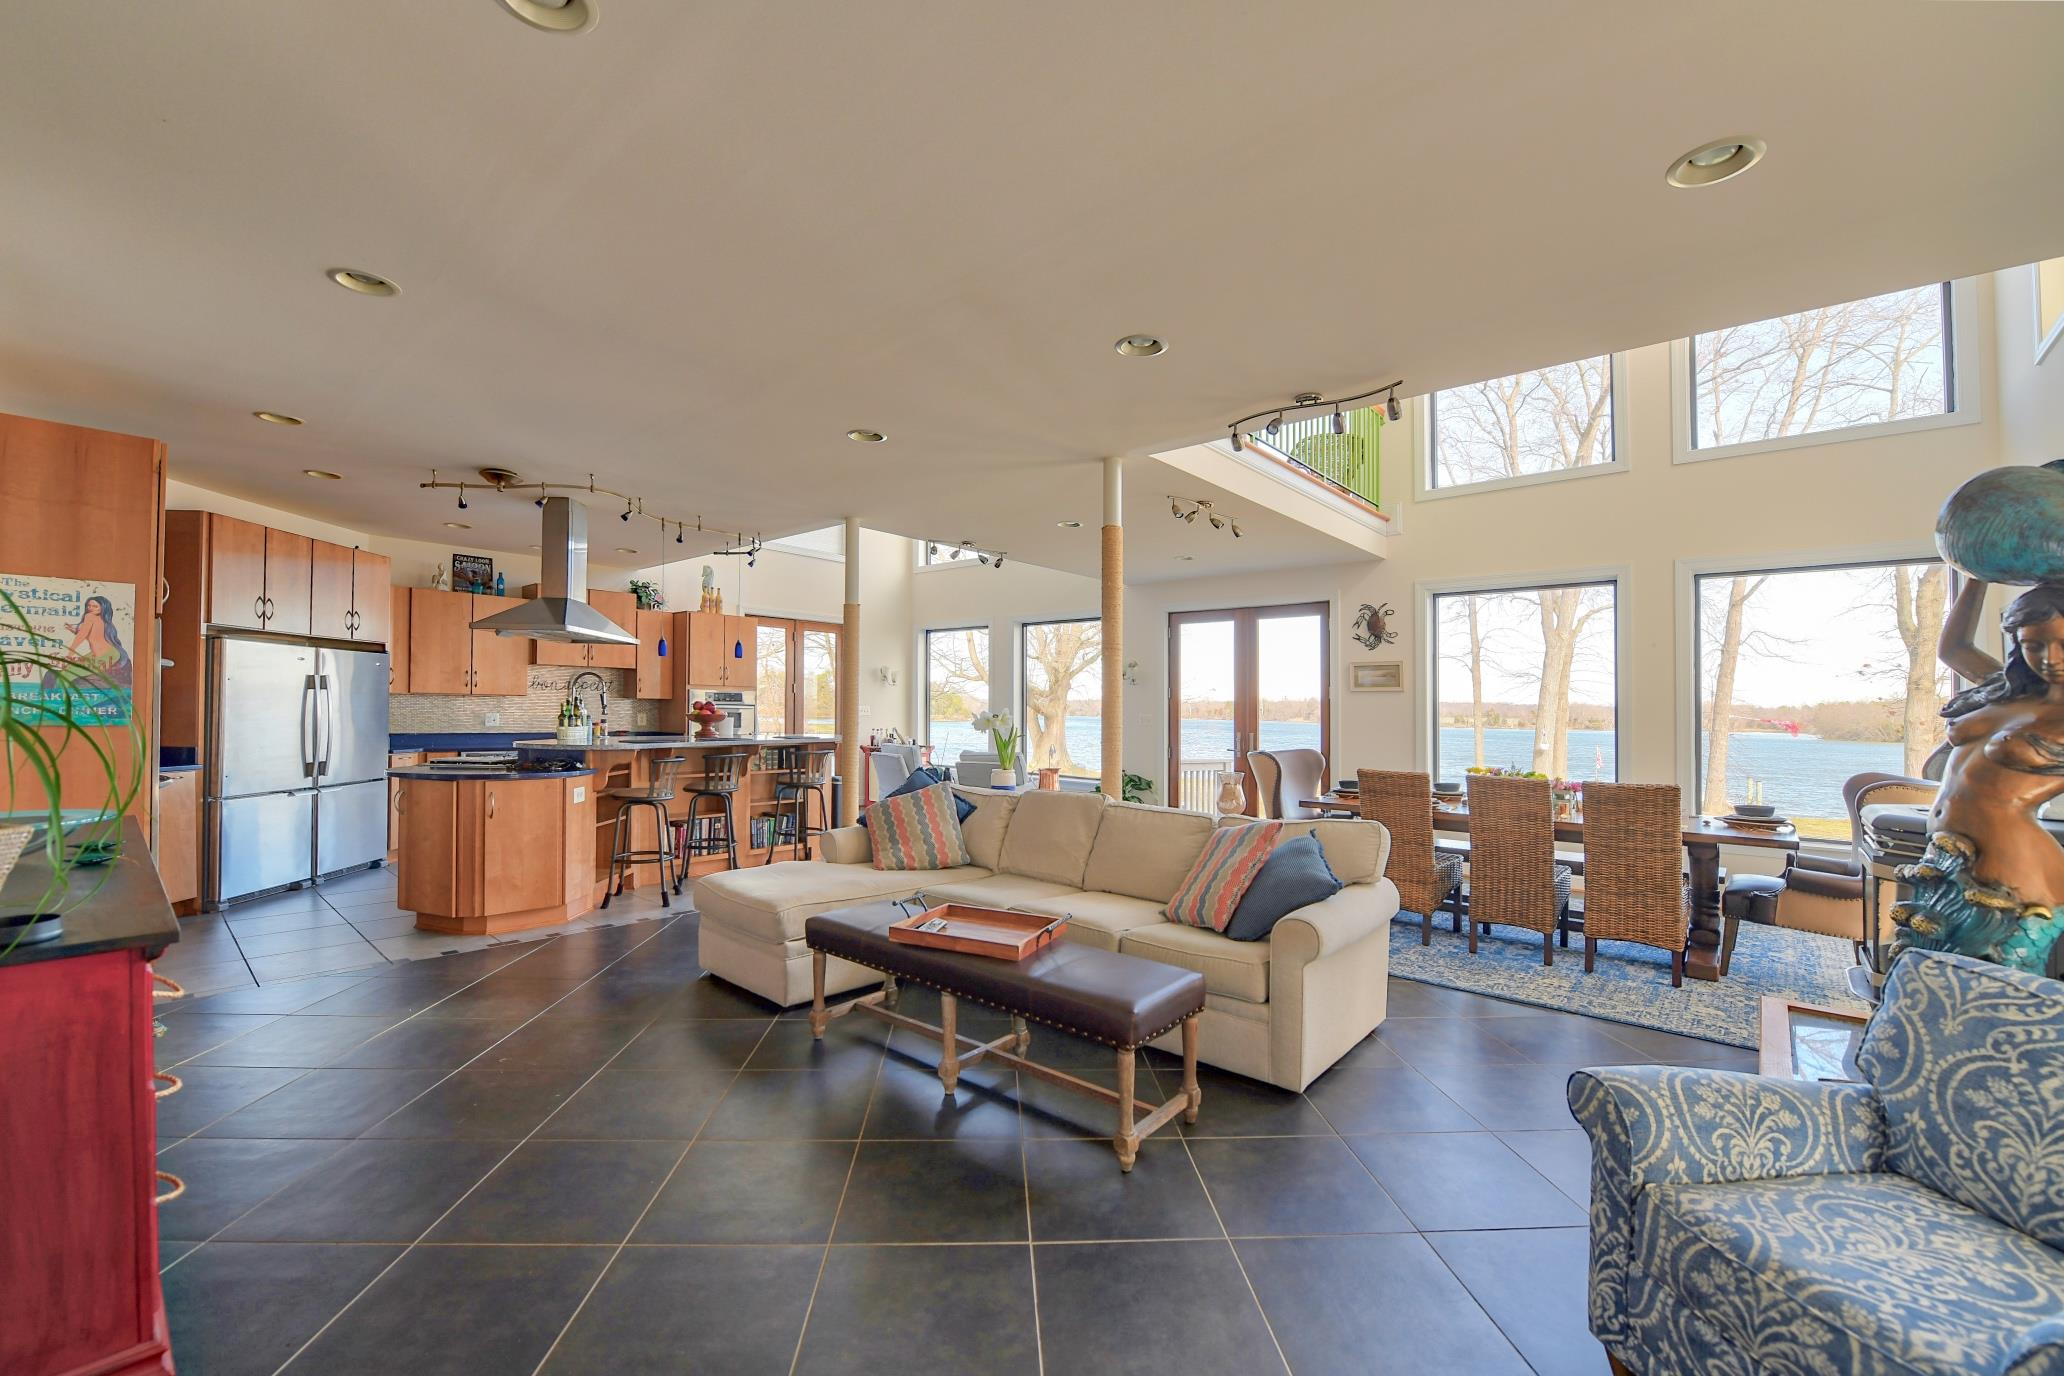 38800 Chasko Road in Abell MD, Saint Mary's County is a custom built contemporary home on Canoe Neck Creek.  This is a fabulous waterfront property, Listed by Marie Lally, Realtor with O'Brien Realty of Southern Maryland!  Marie is your Southern MD, and St Mary's County Waterfront Specialist!  The Best of Southern MD!